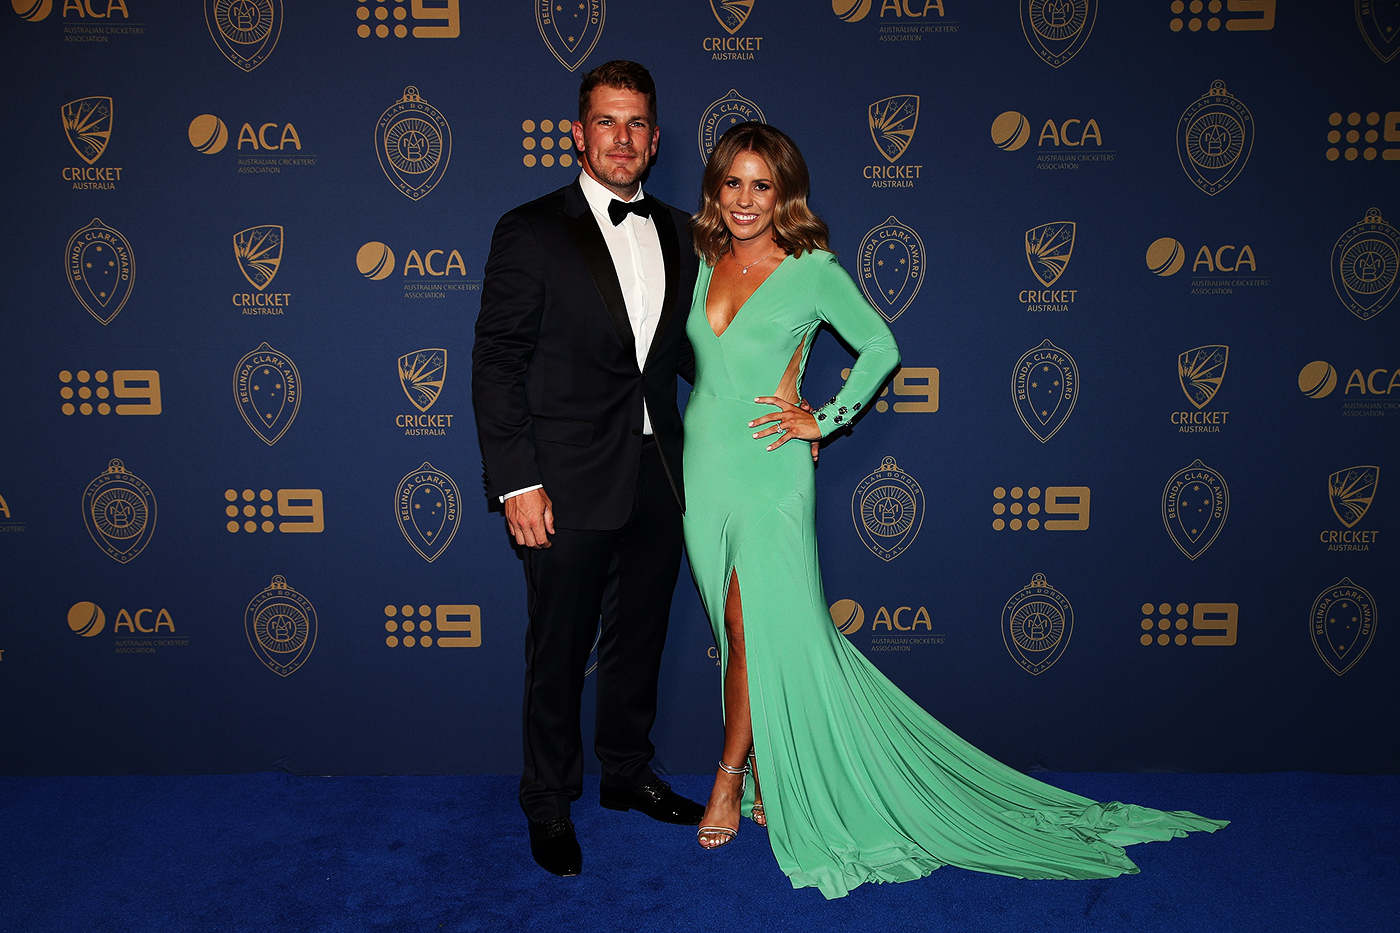 With his wife, Amy. For Finch, like for many other top-level cricketers, 2020 was the longest he spent at home